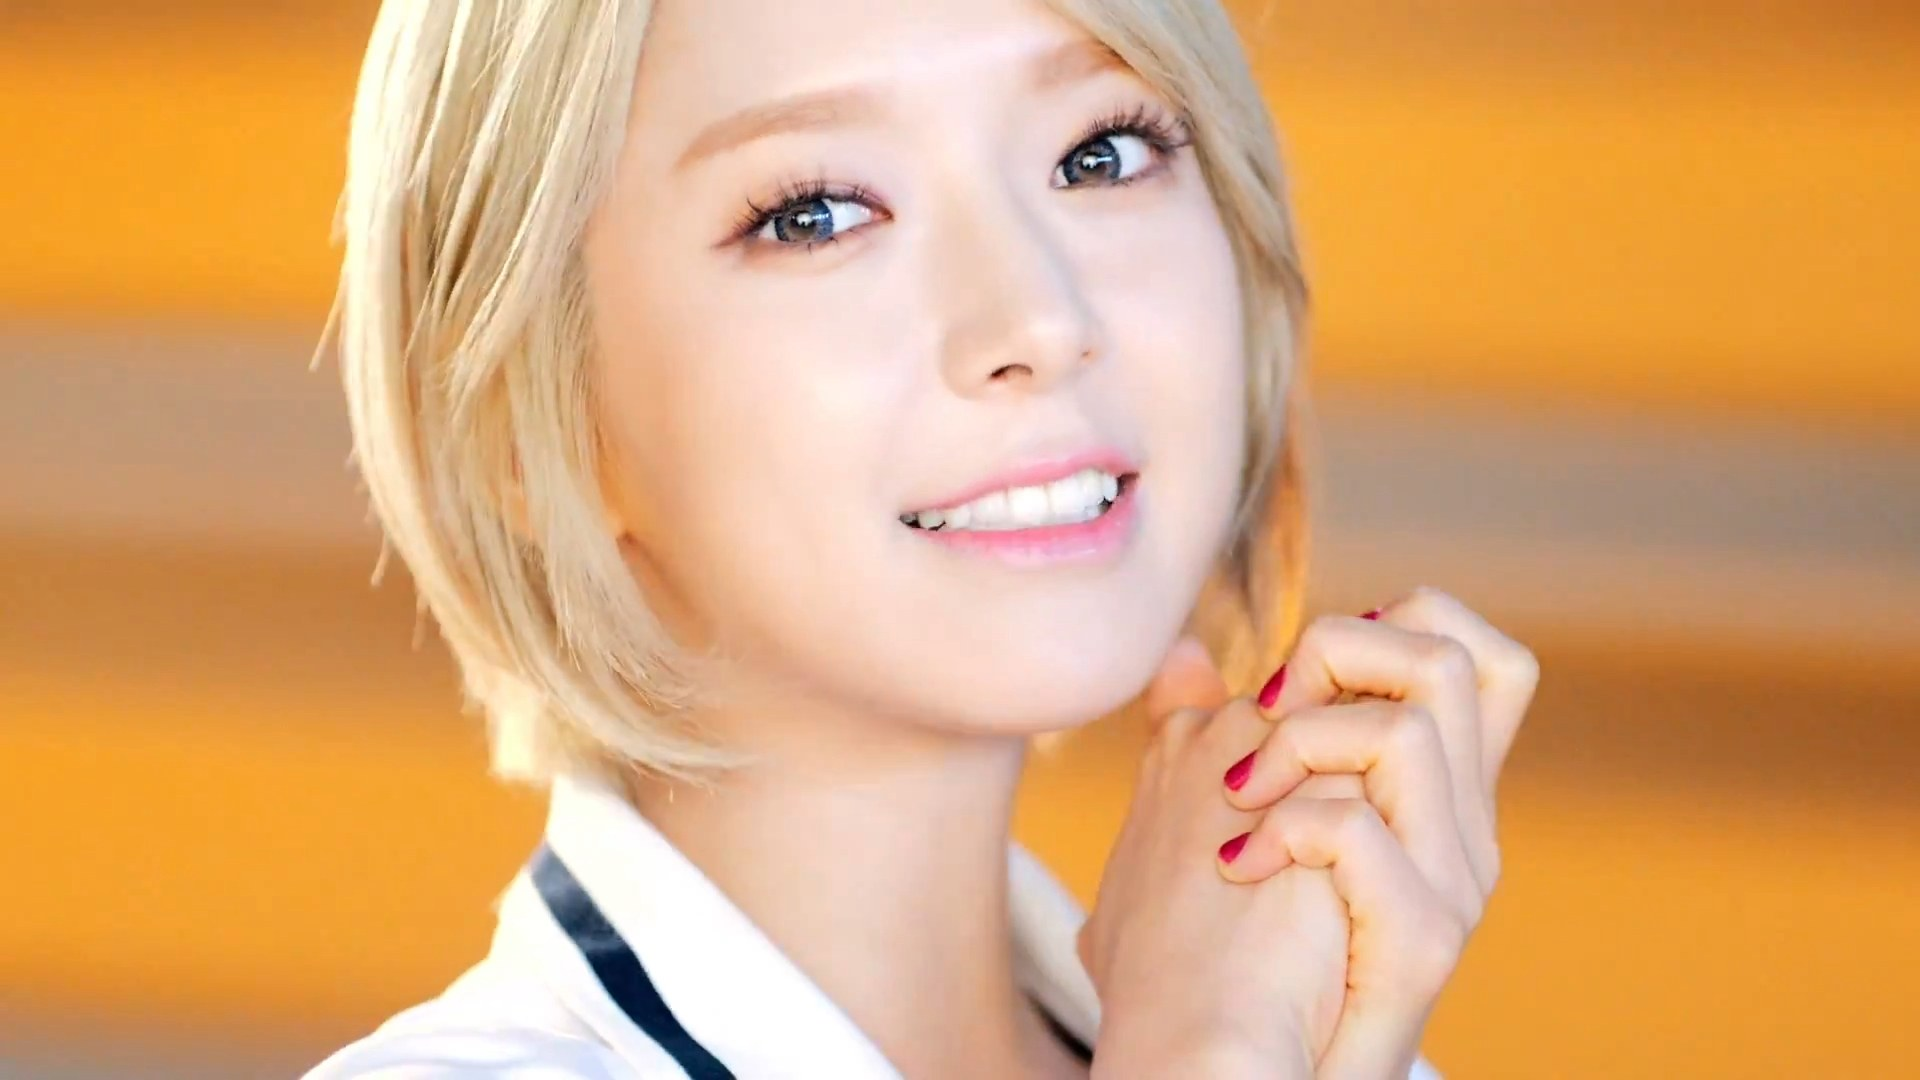 Happy Birthday To AOA39s Hyejeong The Latest Kpop News